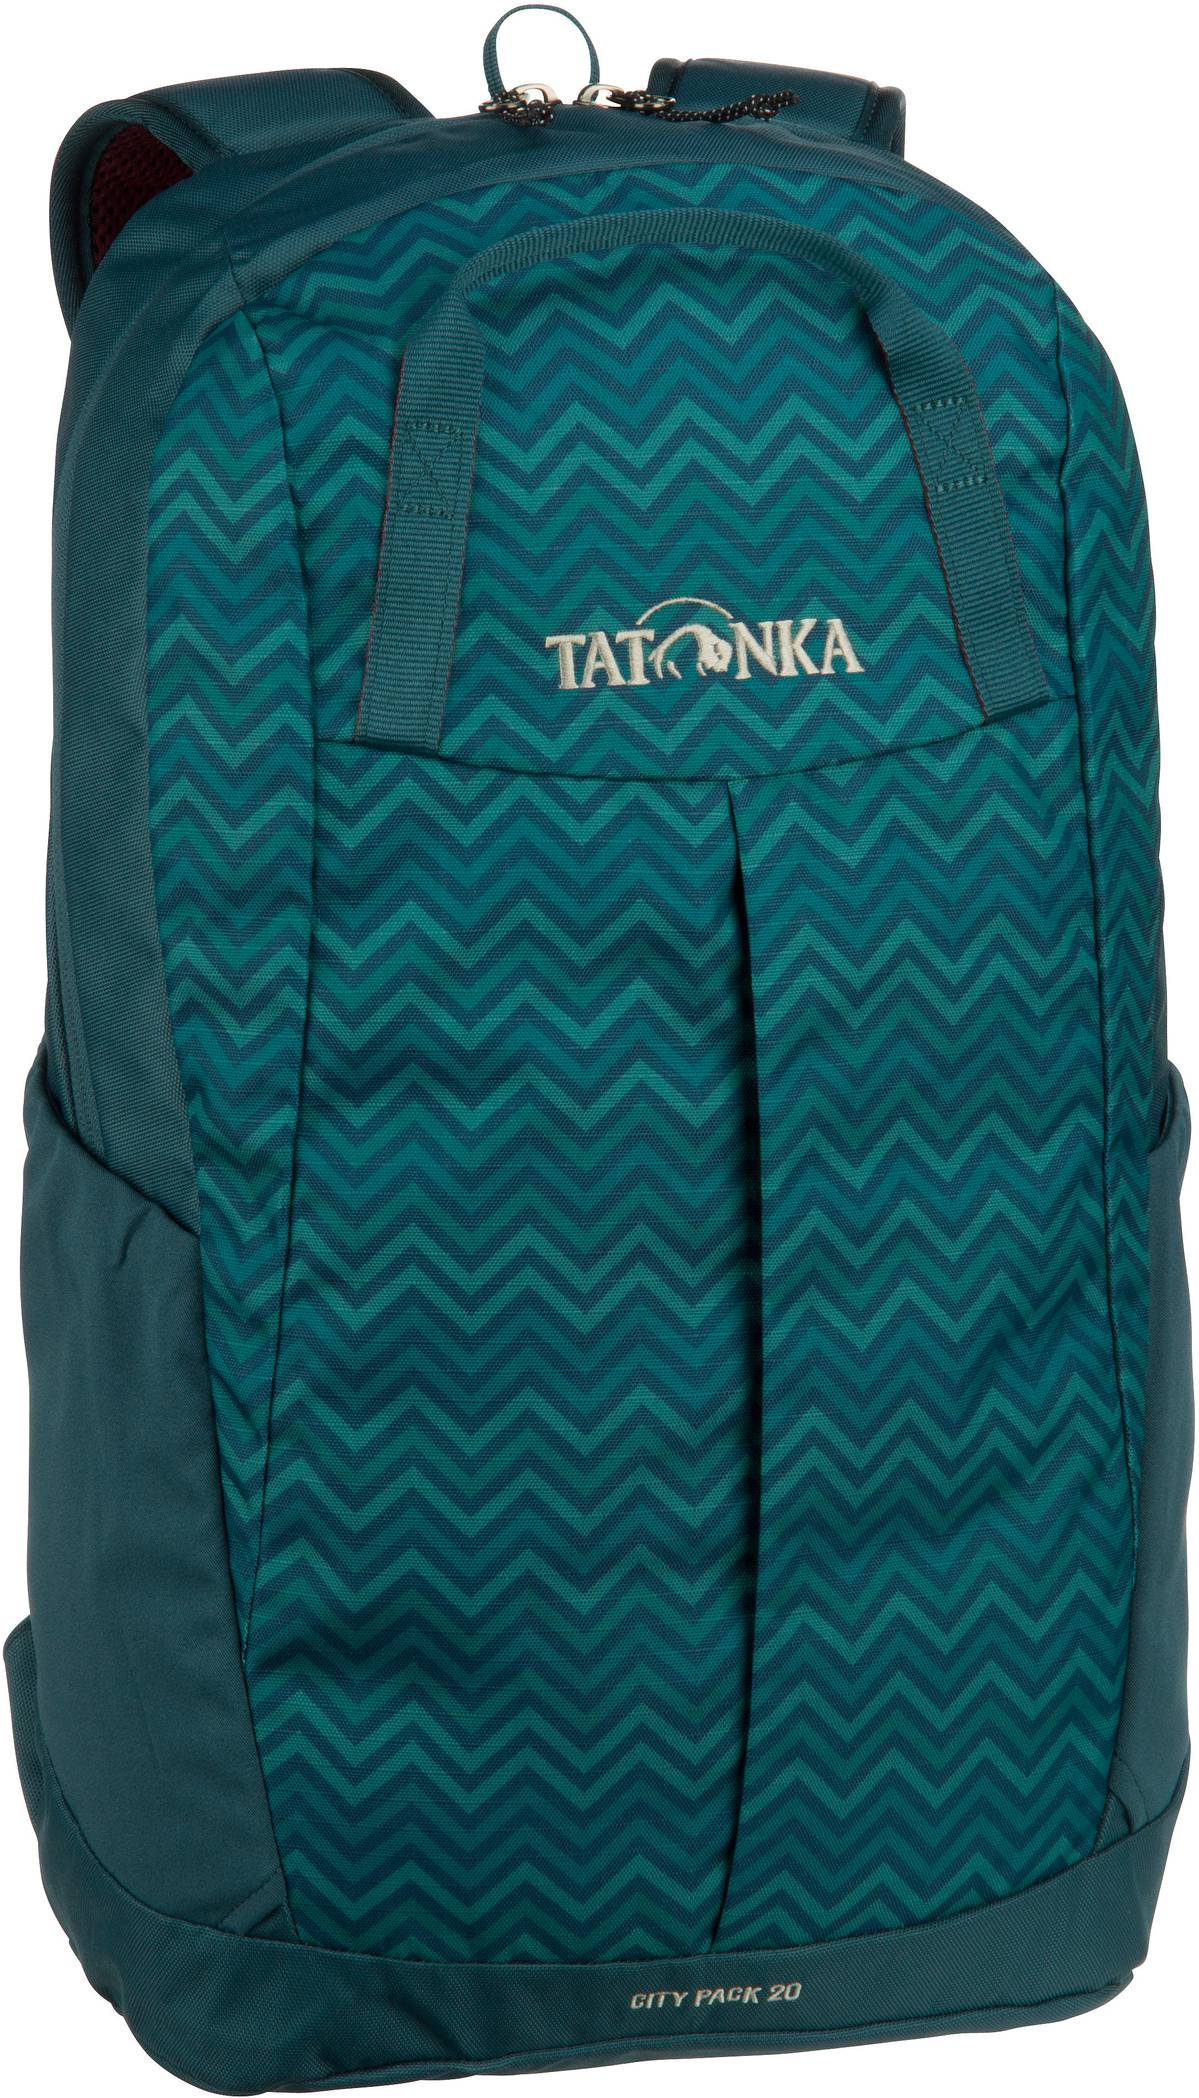 Rucksack / Daypack City Pack 20 Teal Green Zig Zag (20 Liter)